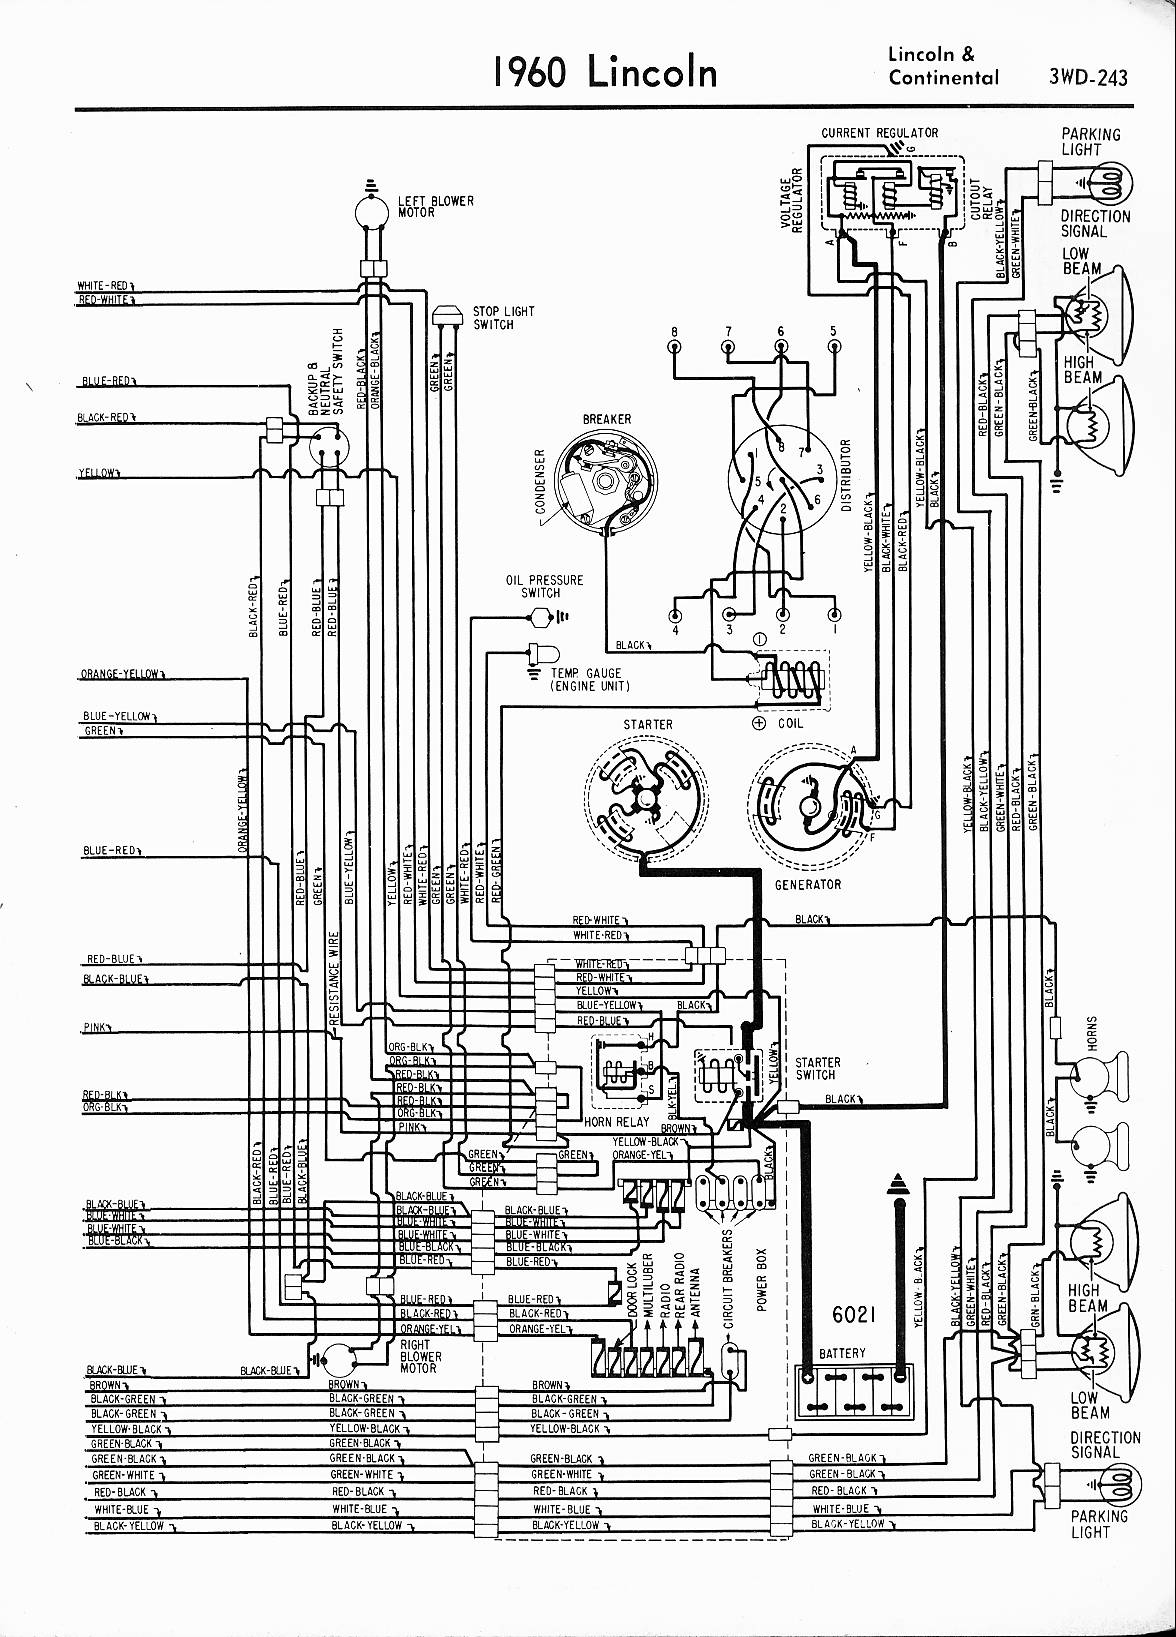 Wiring Diagrams For A Lincoln Limousine Opinions About 2001 Navigator Engine Diagram 1960 Schematics U2022 Rh Schoosretailstores Com 1999 Town Car